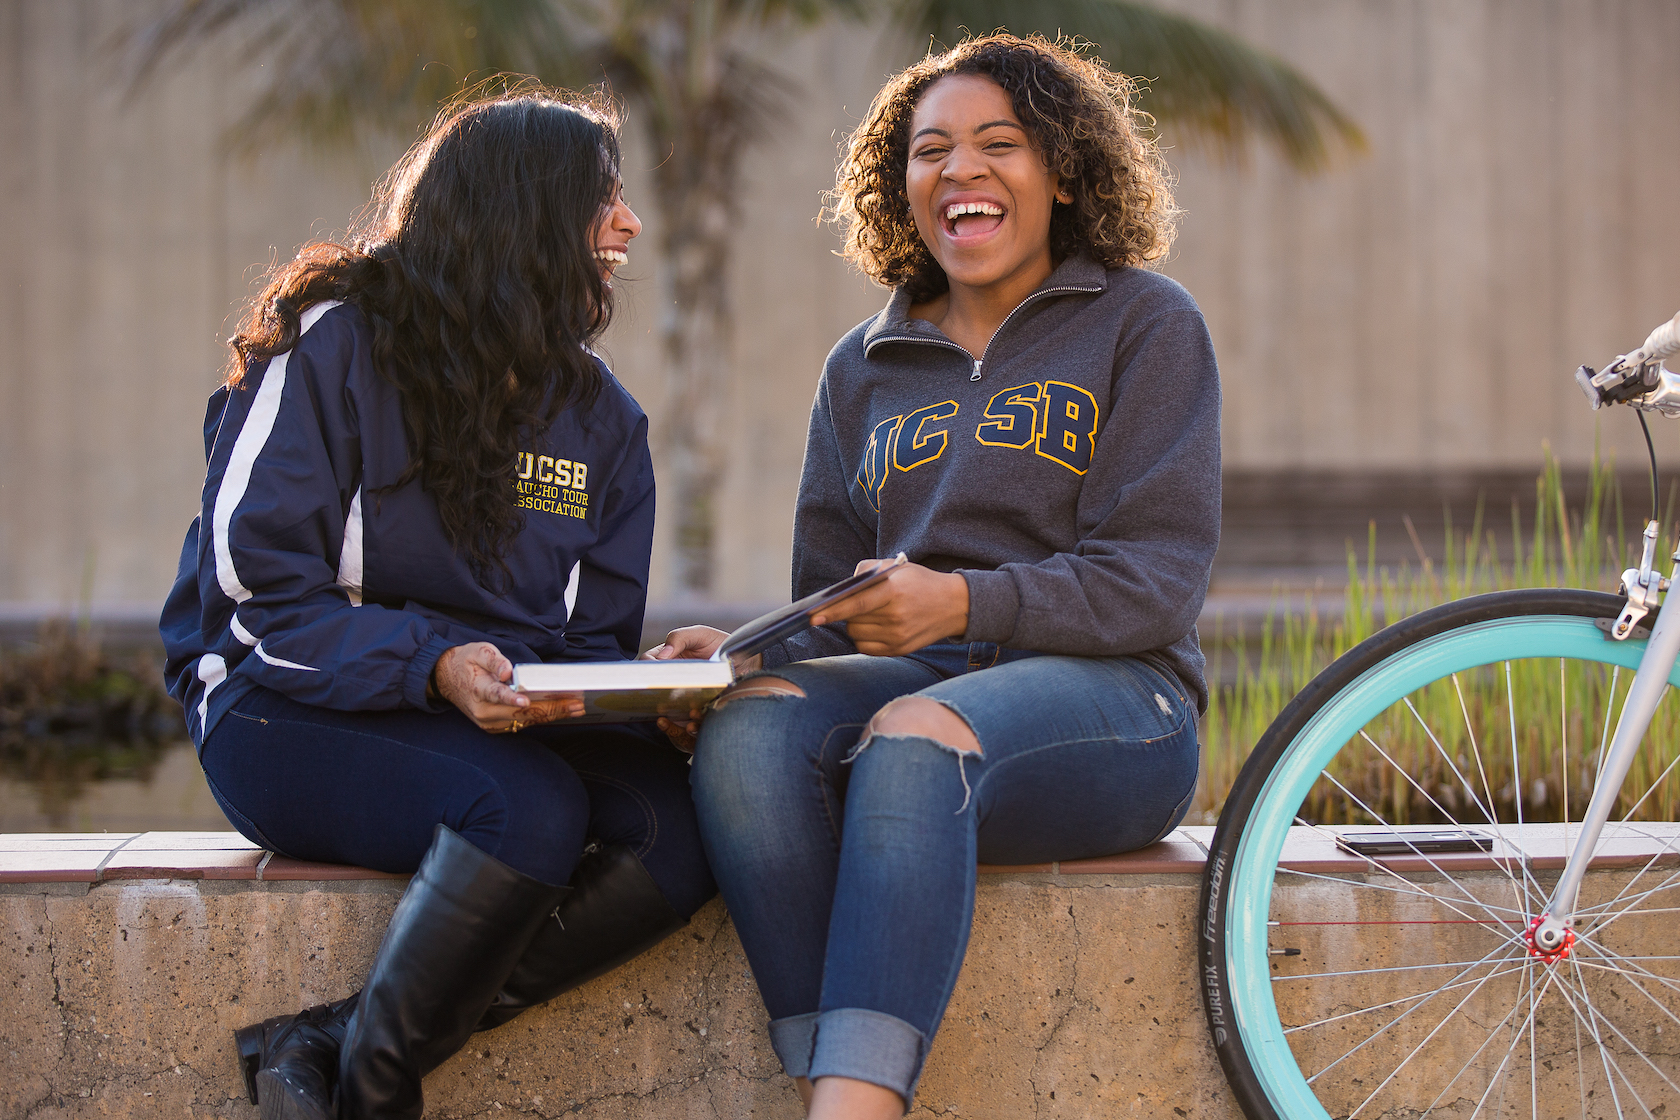 ucsb students laughing